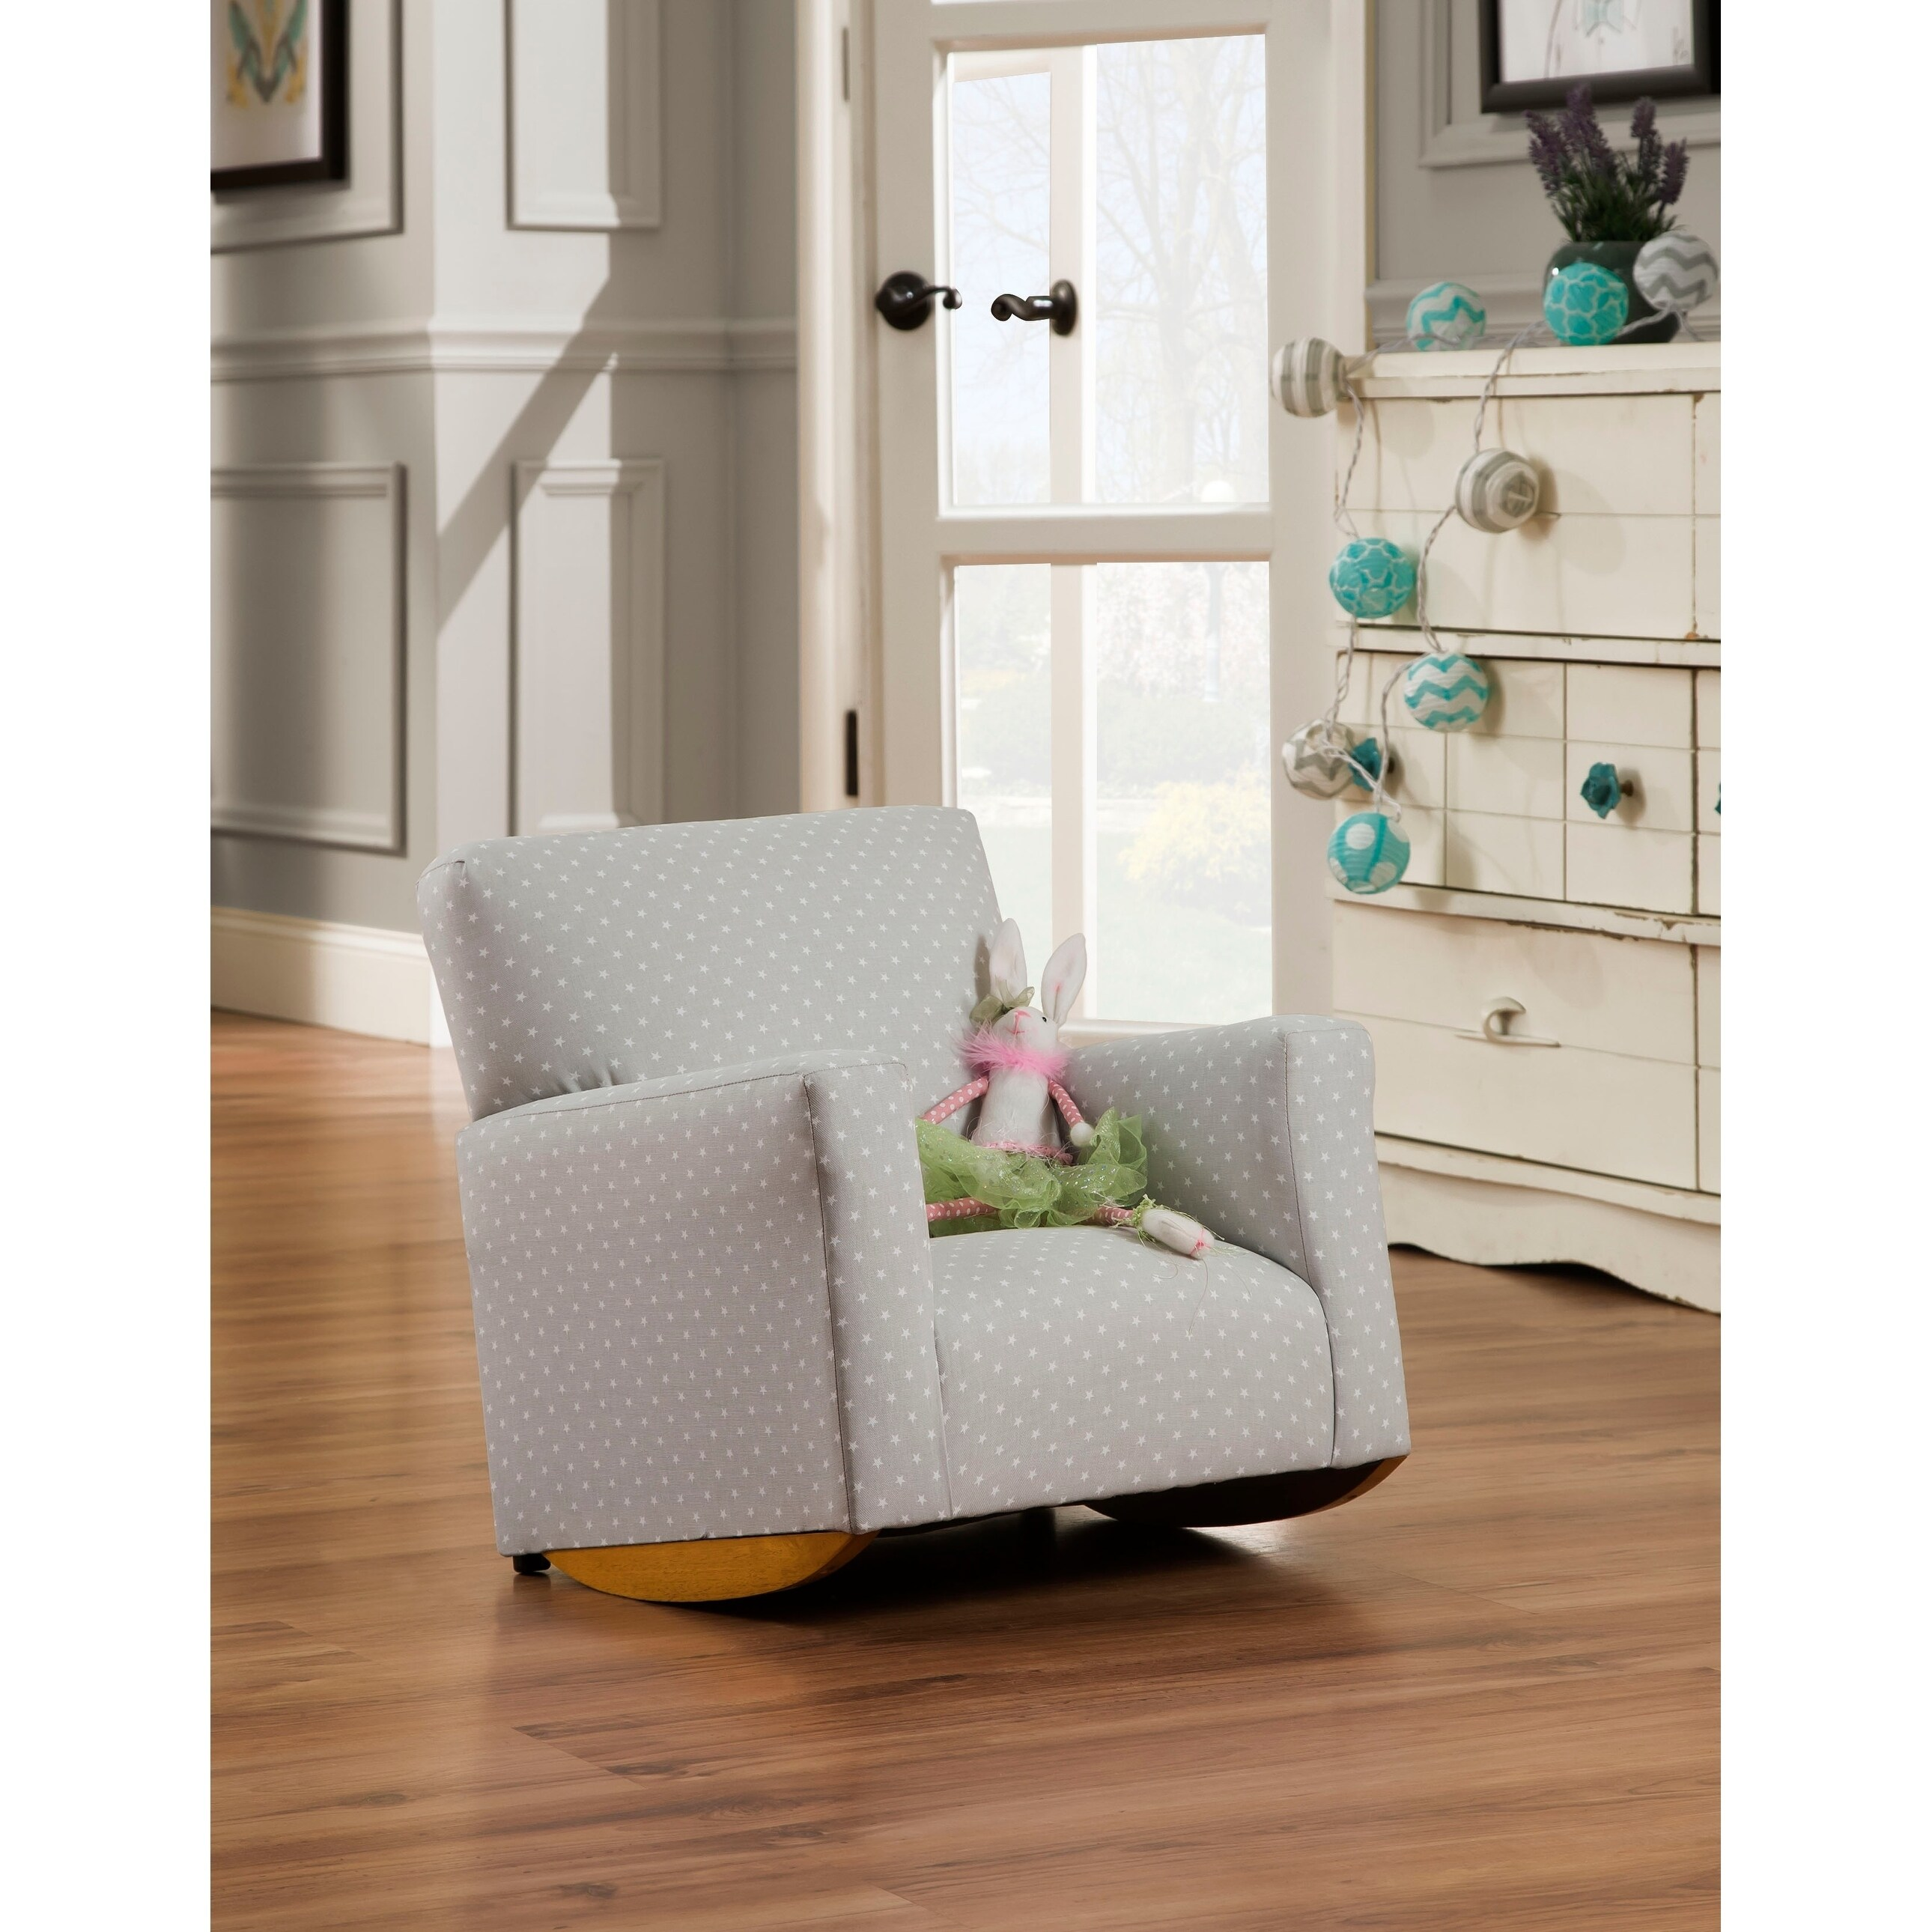 Toddler Upholstered Rocking Chair Buy Rocking Chairs Kids Toddler Chairs Online At Overstock